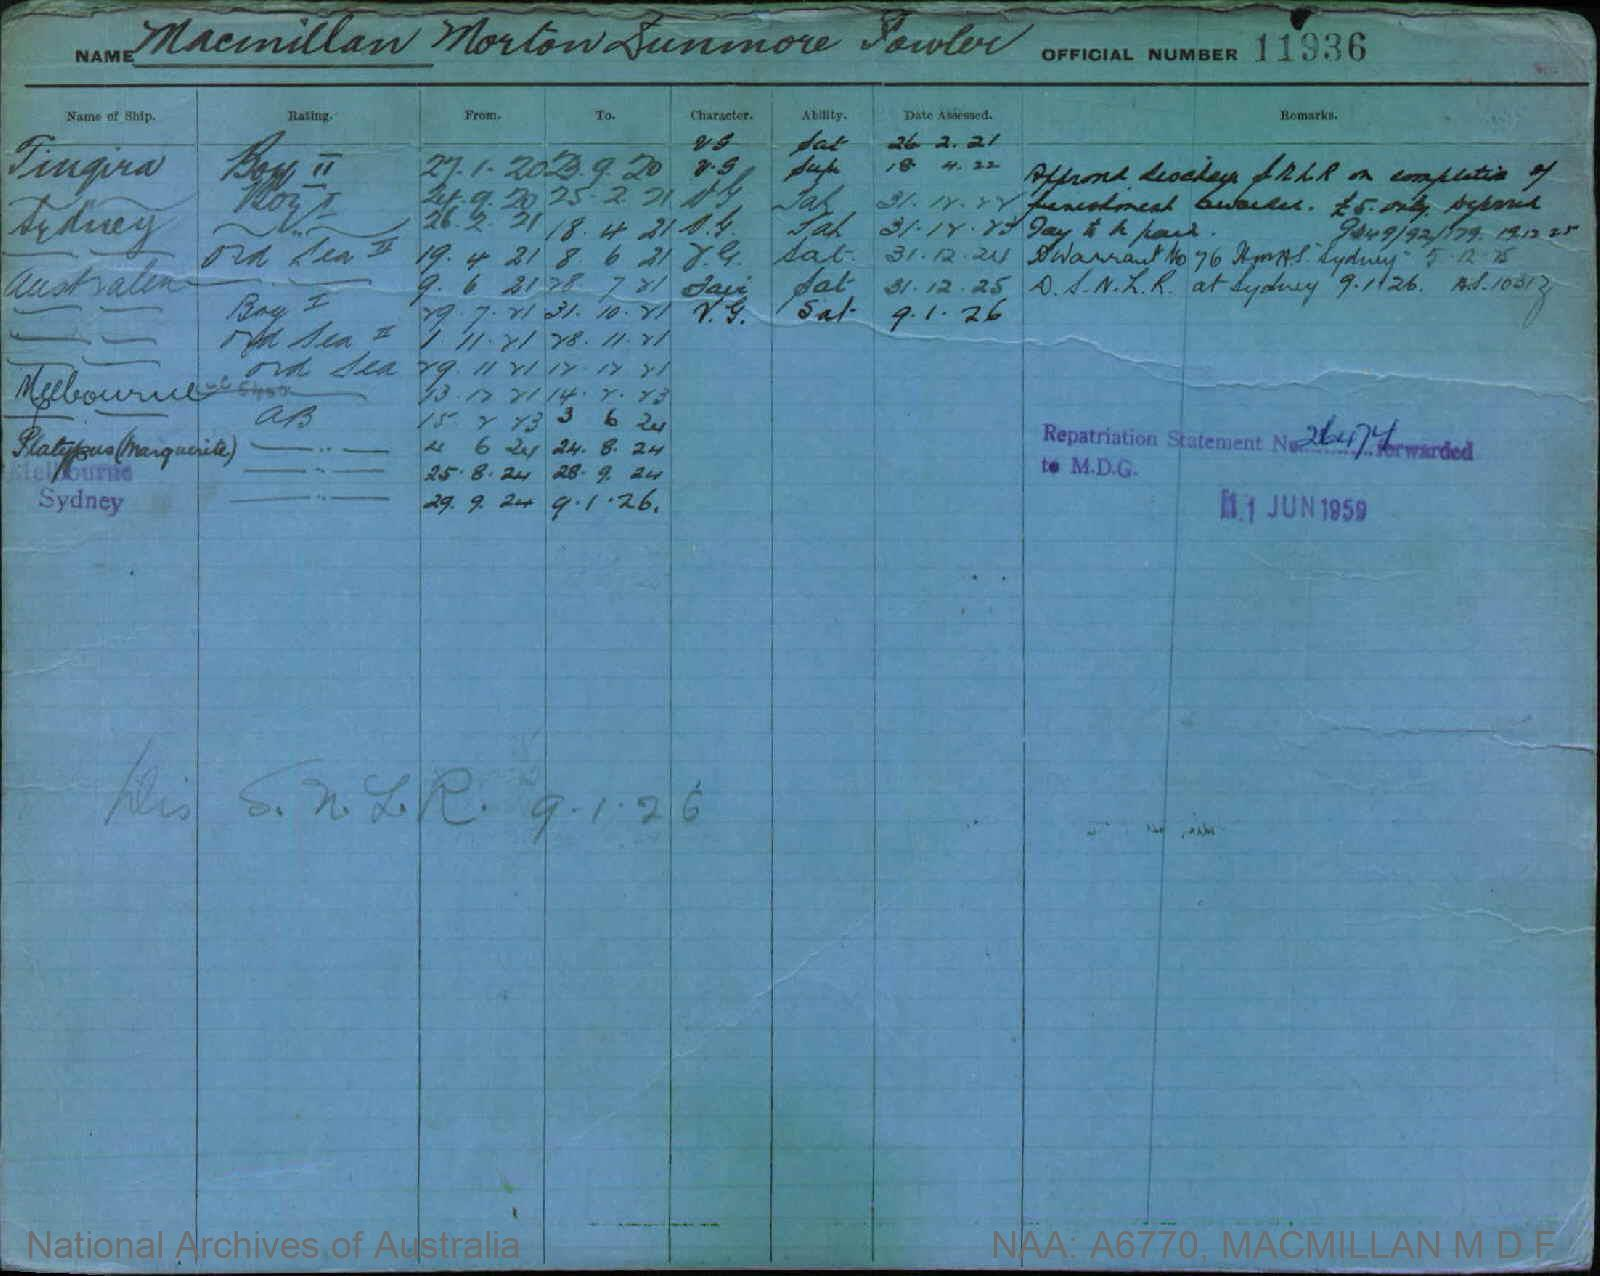 MACMILLAN MORTON DUNMORE FOWLER : Service Number - 11936 : Date of birth - 19 Apr 1904 : Place of birth - BOWRAL NSW : Place of enlistment - SYDNEY : Next of Kin - SARAH